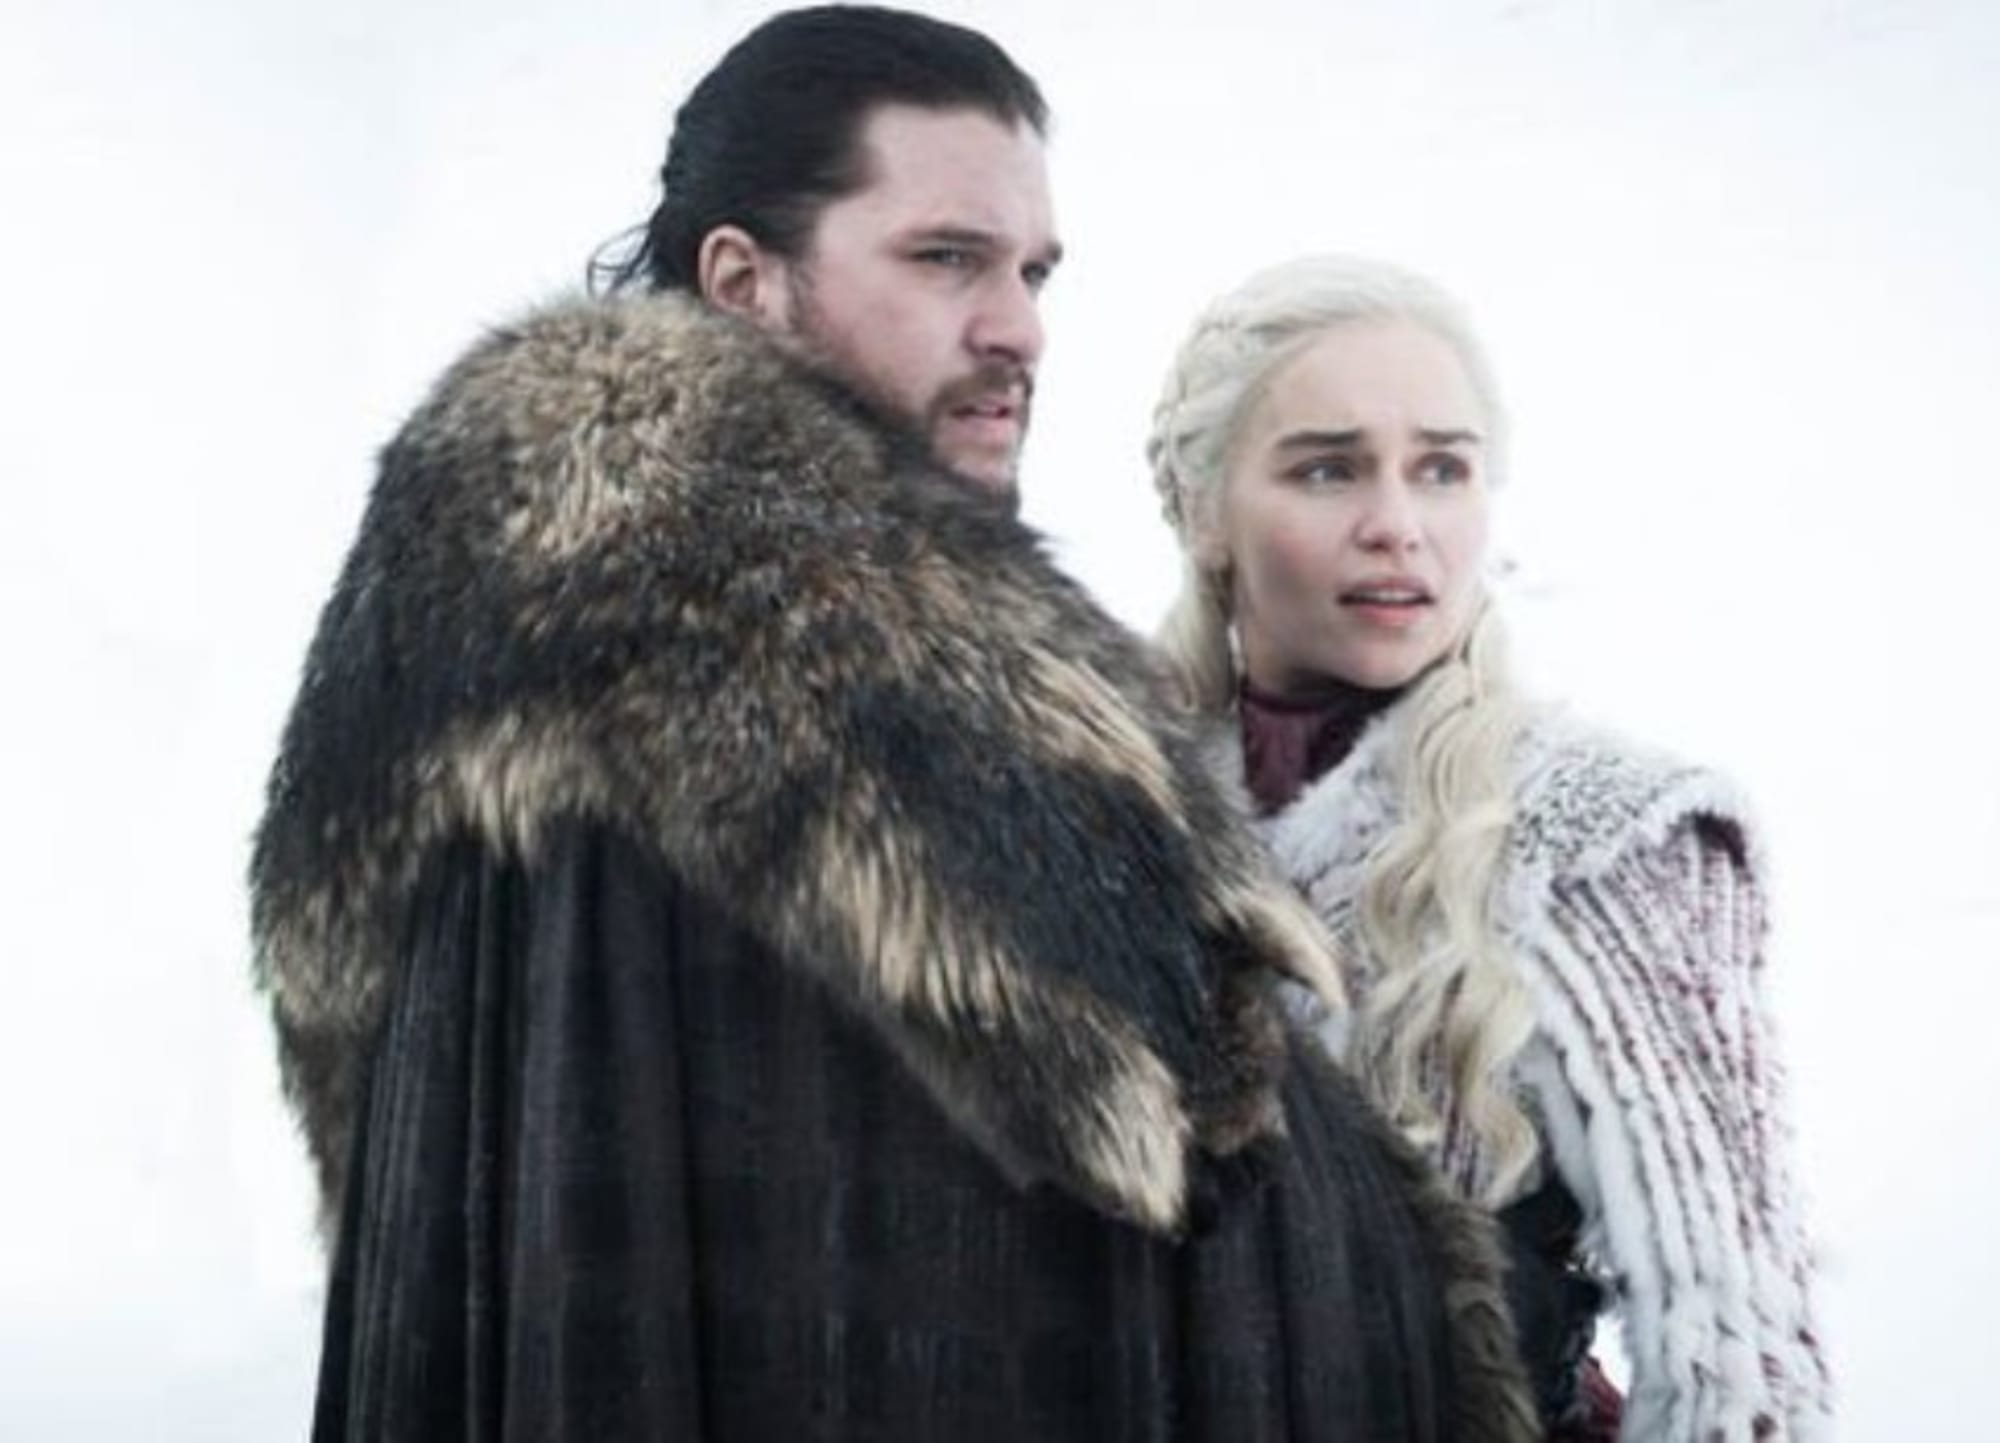 You can now watch the Game of Thrones Reunion Special on HBO Max